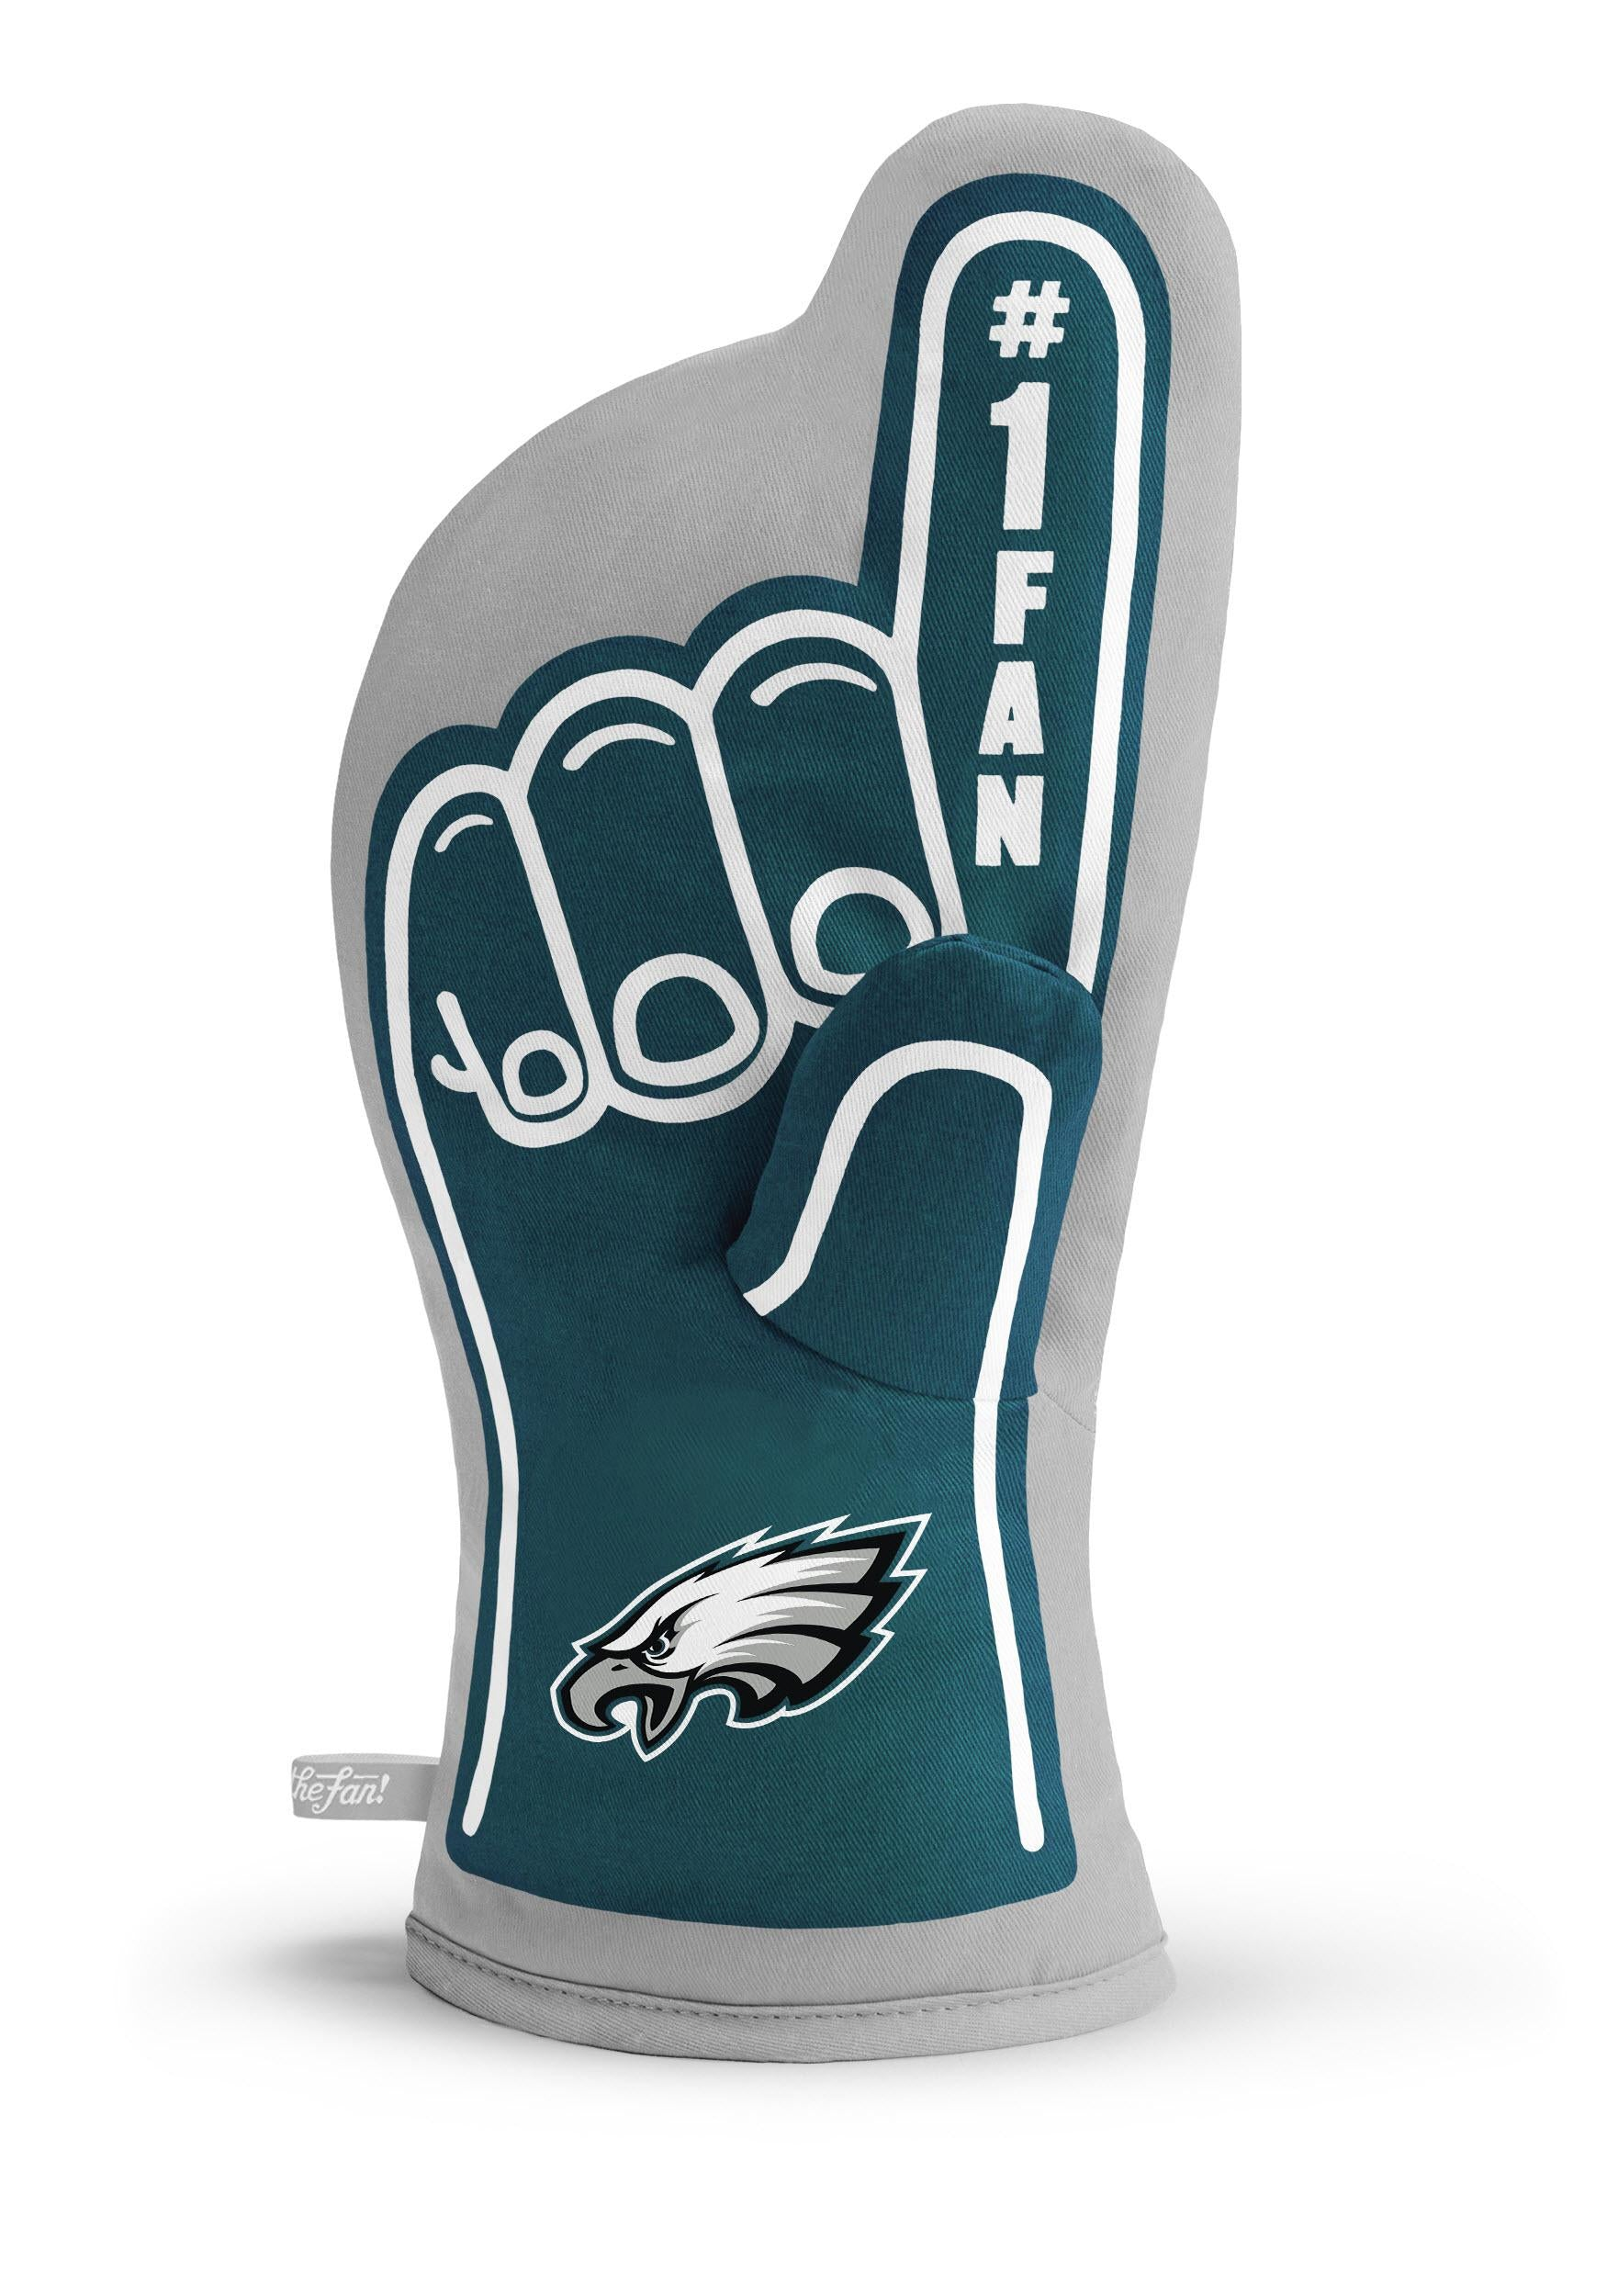 Philadelphia Eagles #1 Oven Mitt